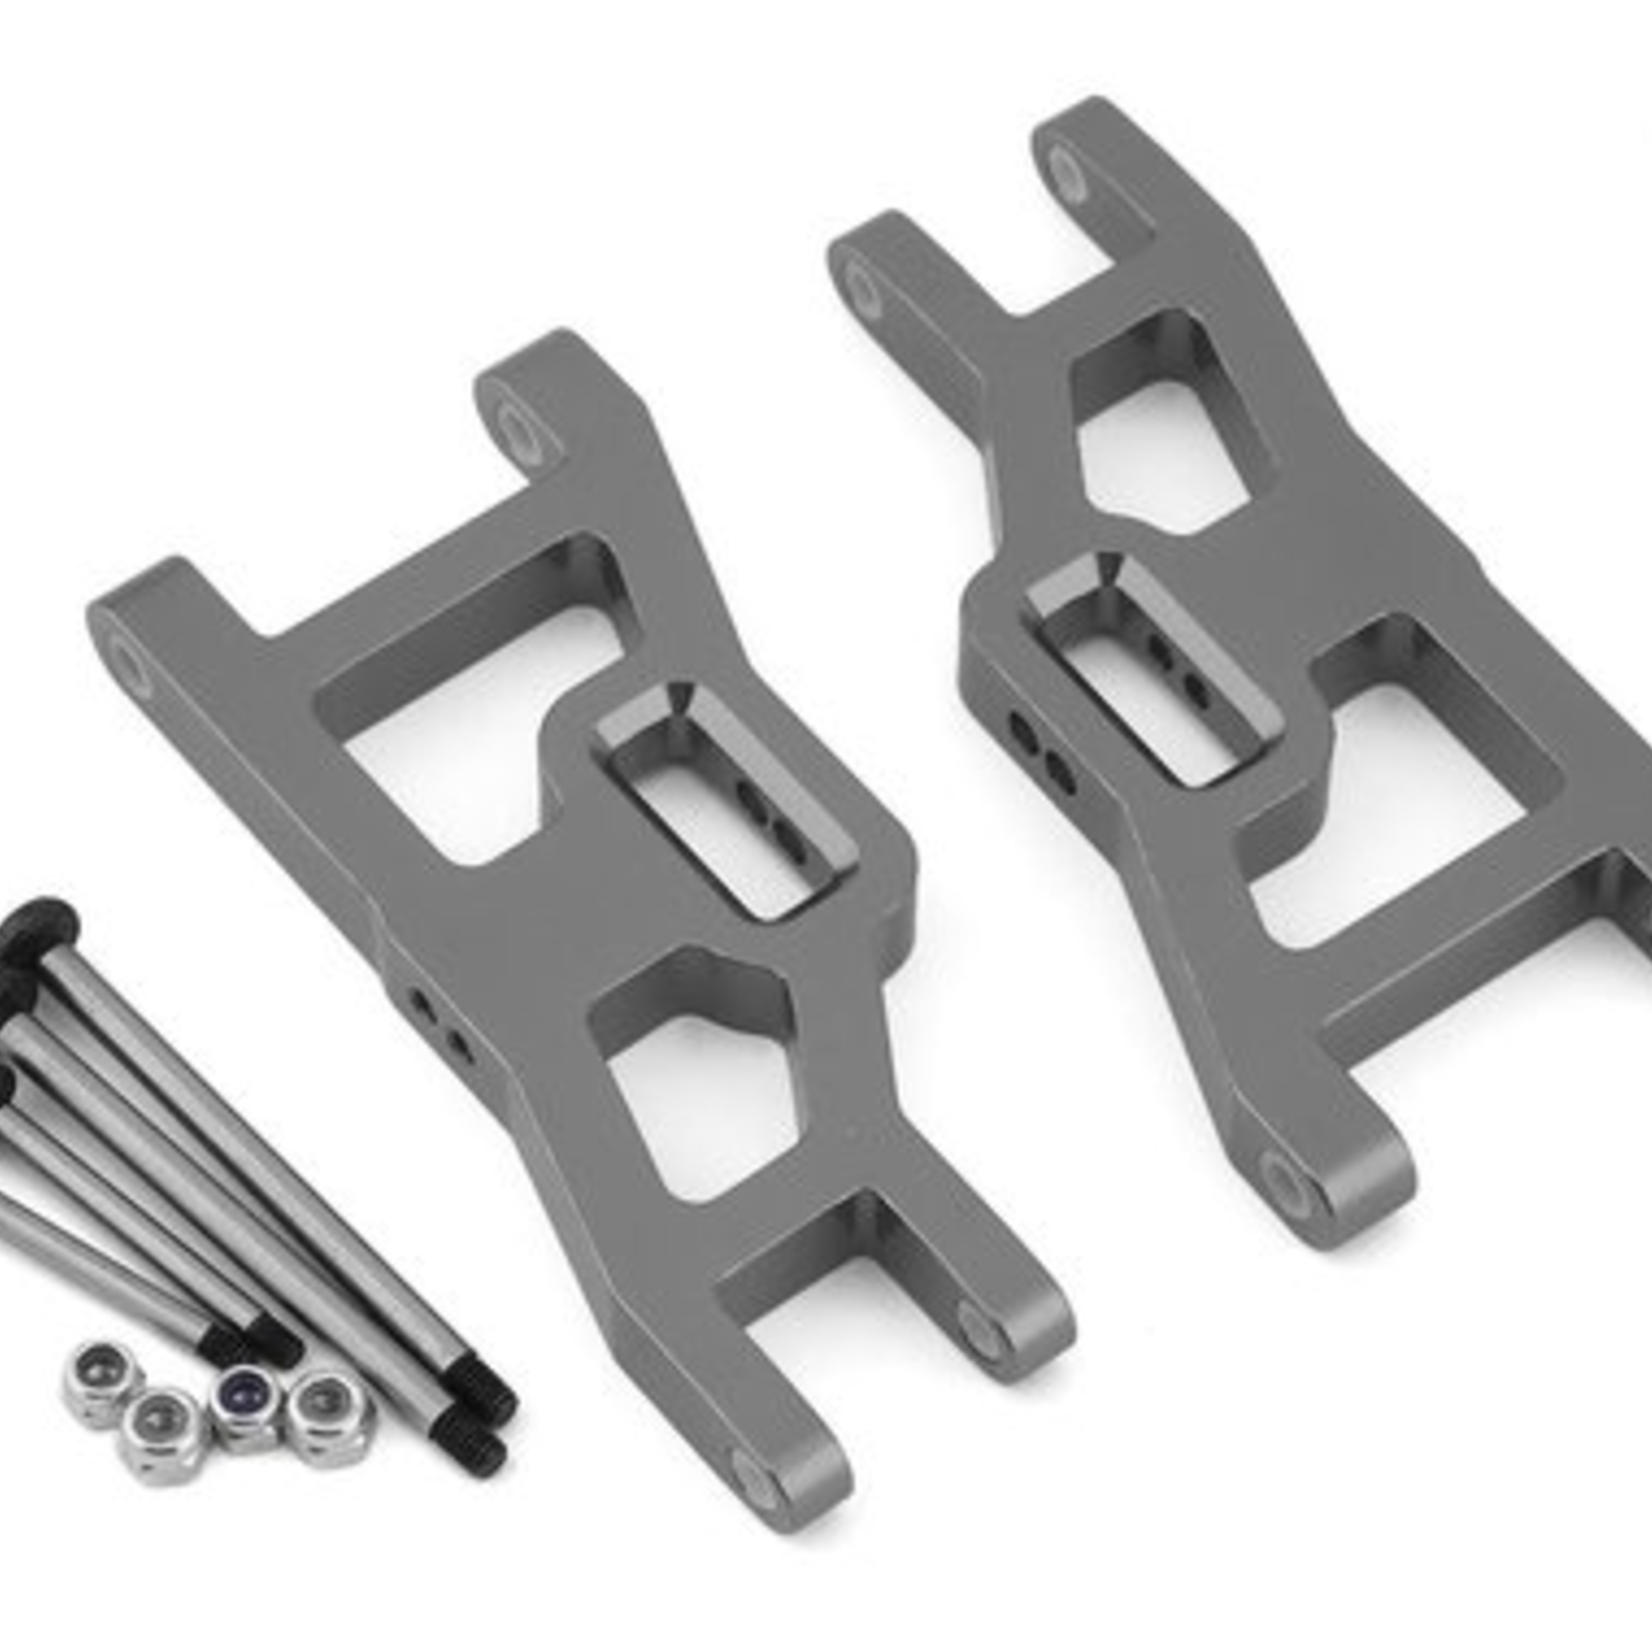 ST Racing Concepts SPTST3631XGM ST Racing Concepts Green Heavy Duty Front Suspension Arms Kit w/ Lock-Nut Hinge-Pins, for Traxxas Rustler/Stampede (Gun Metal)